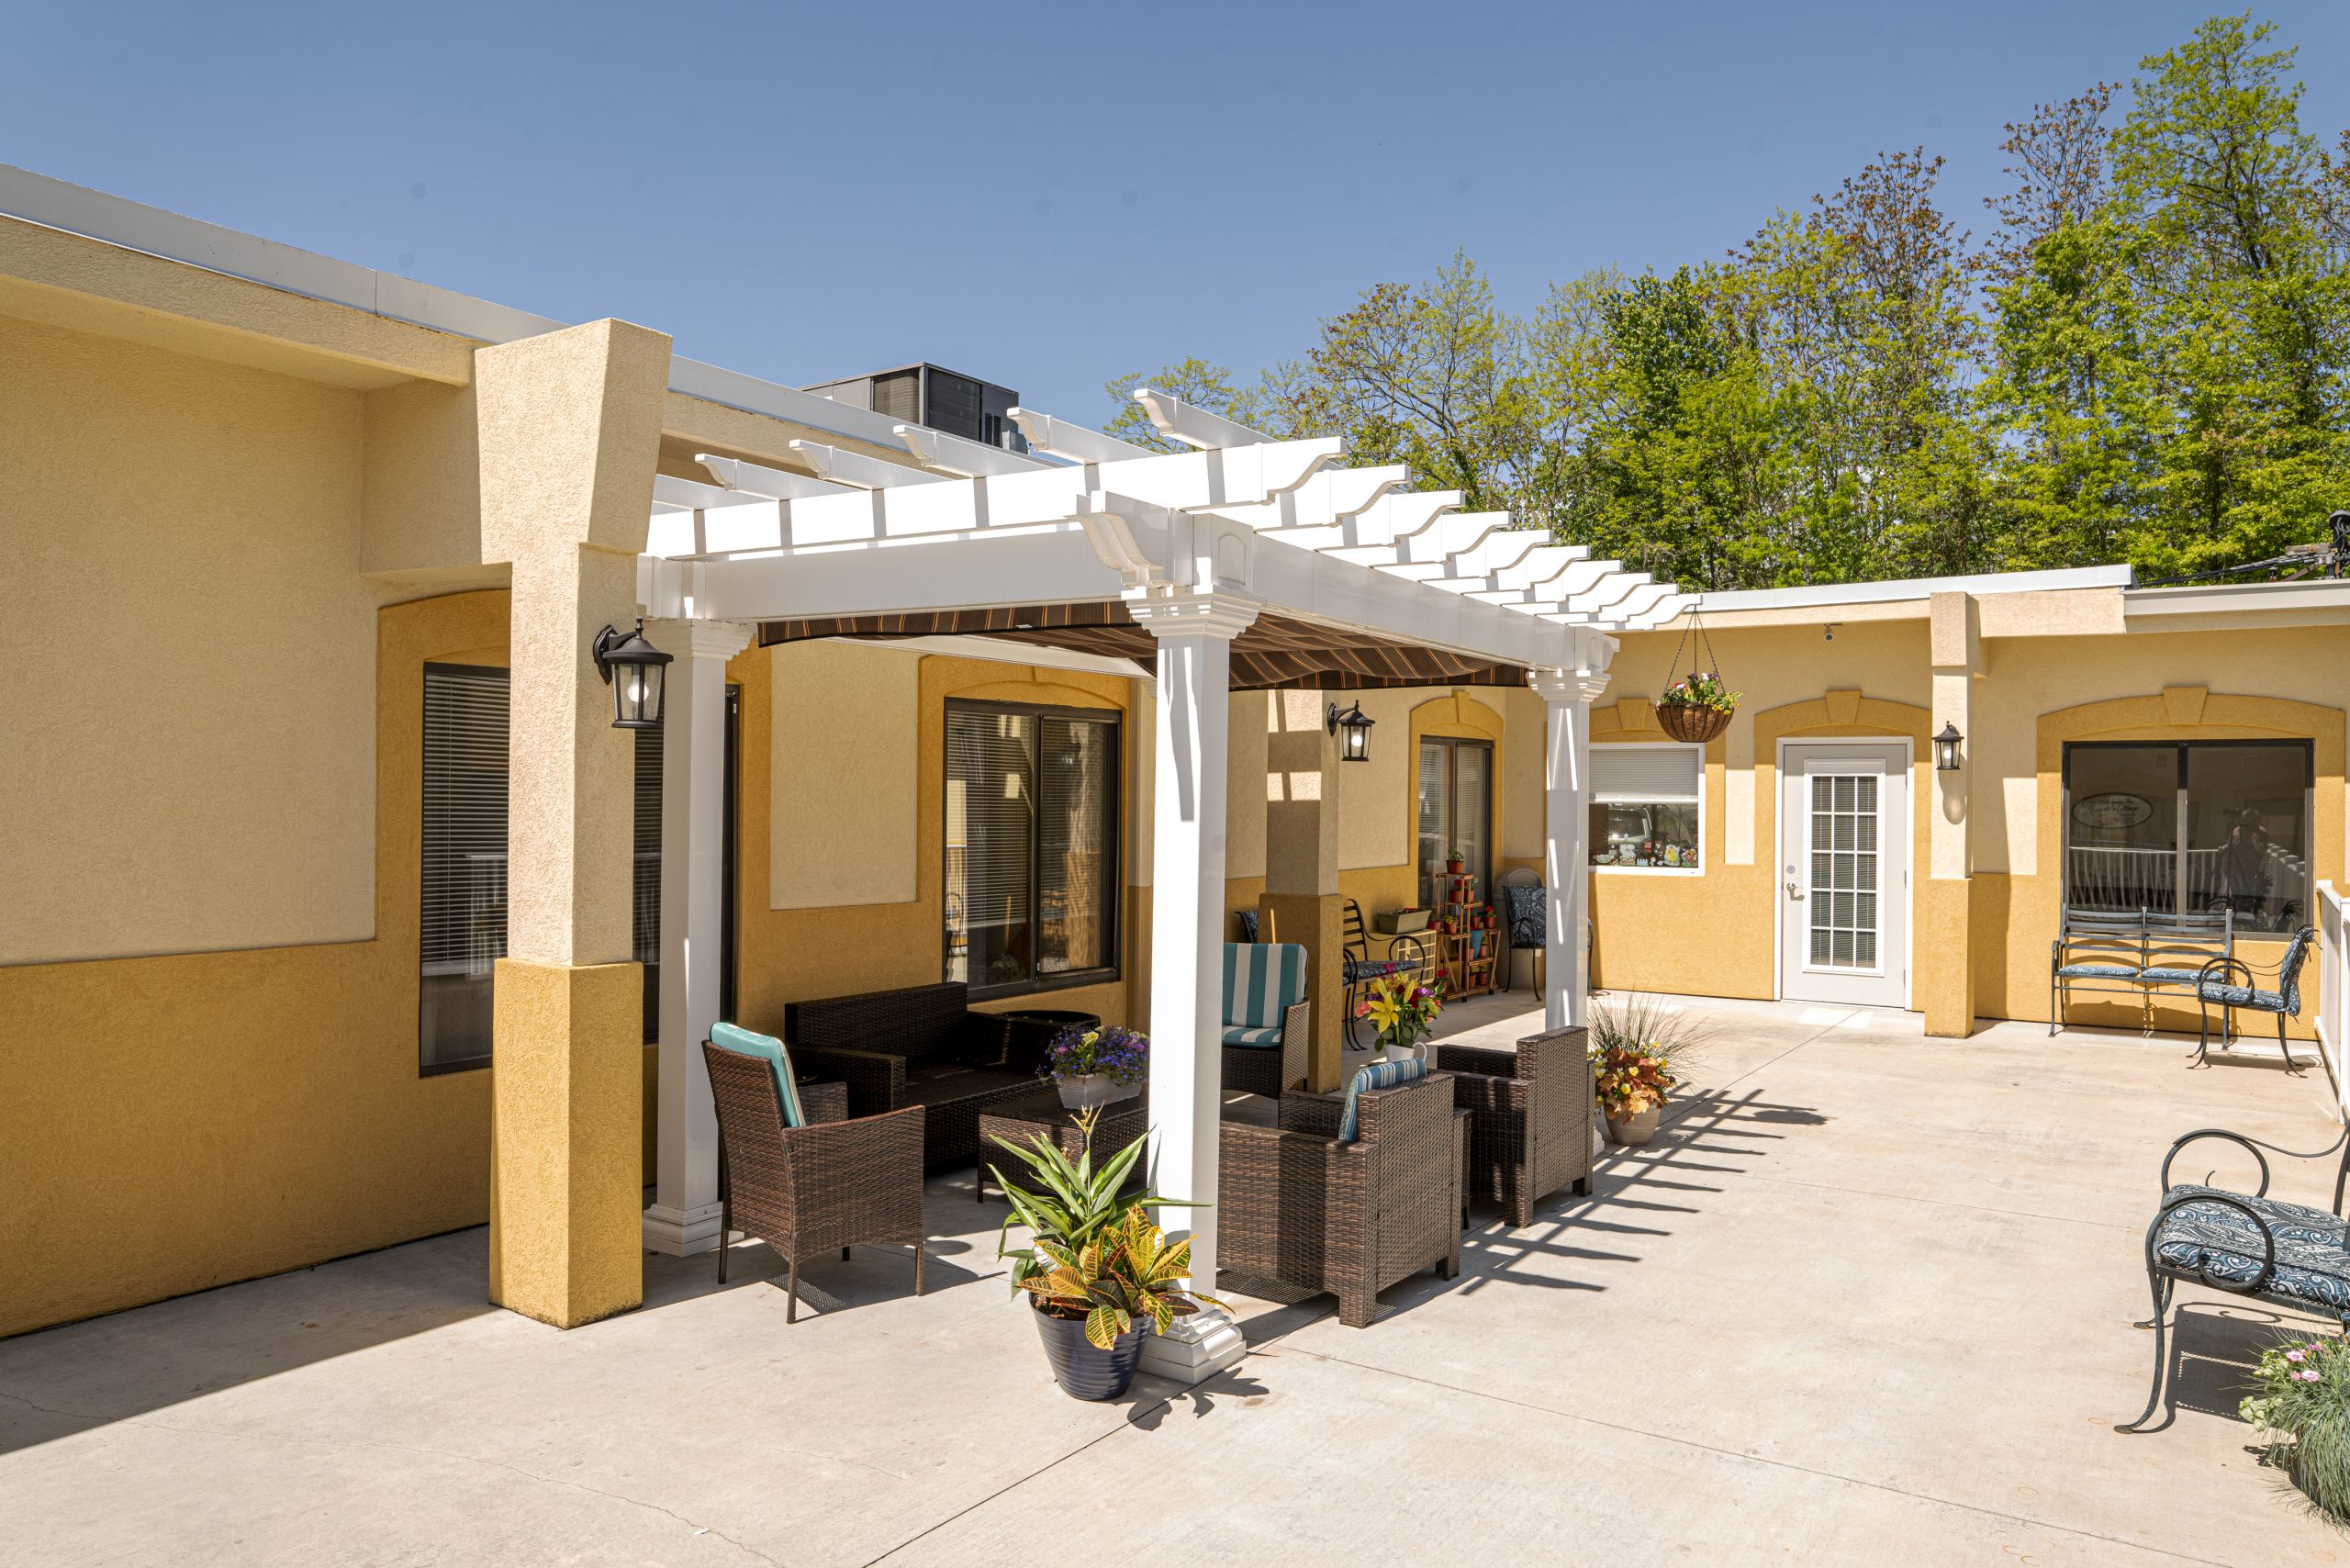 Wide view of Stonerise Parkersburg patio area with pergola and seating